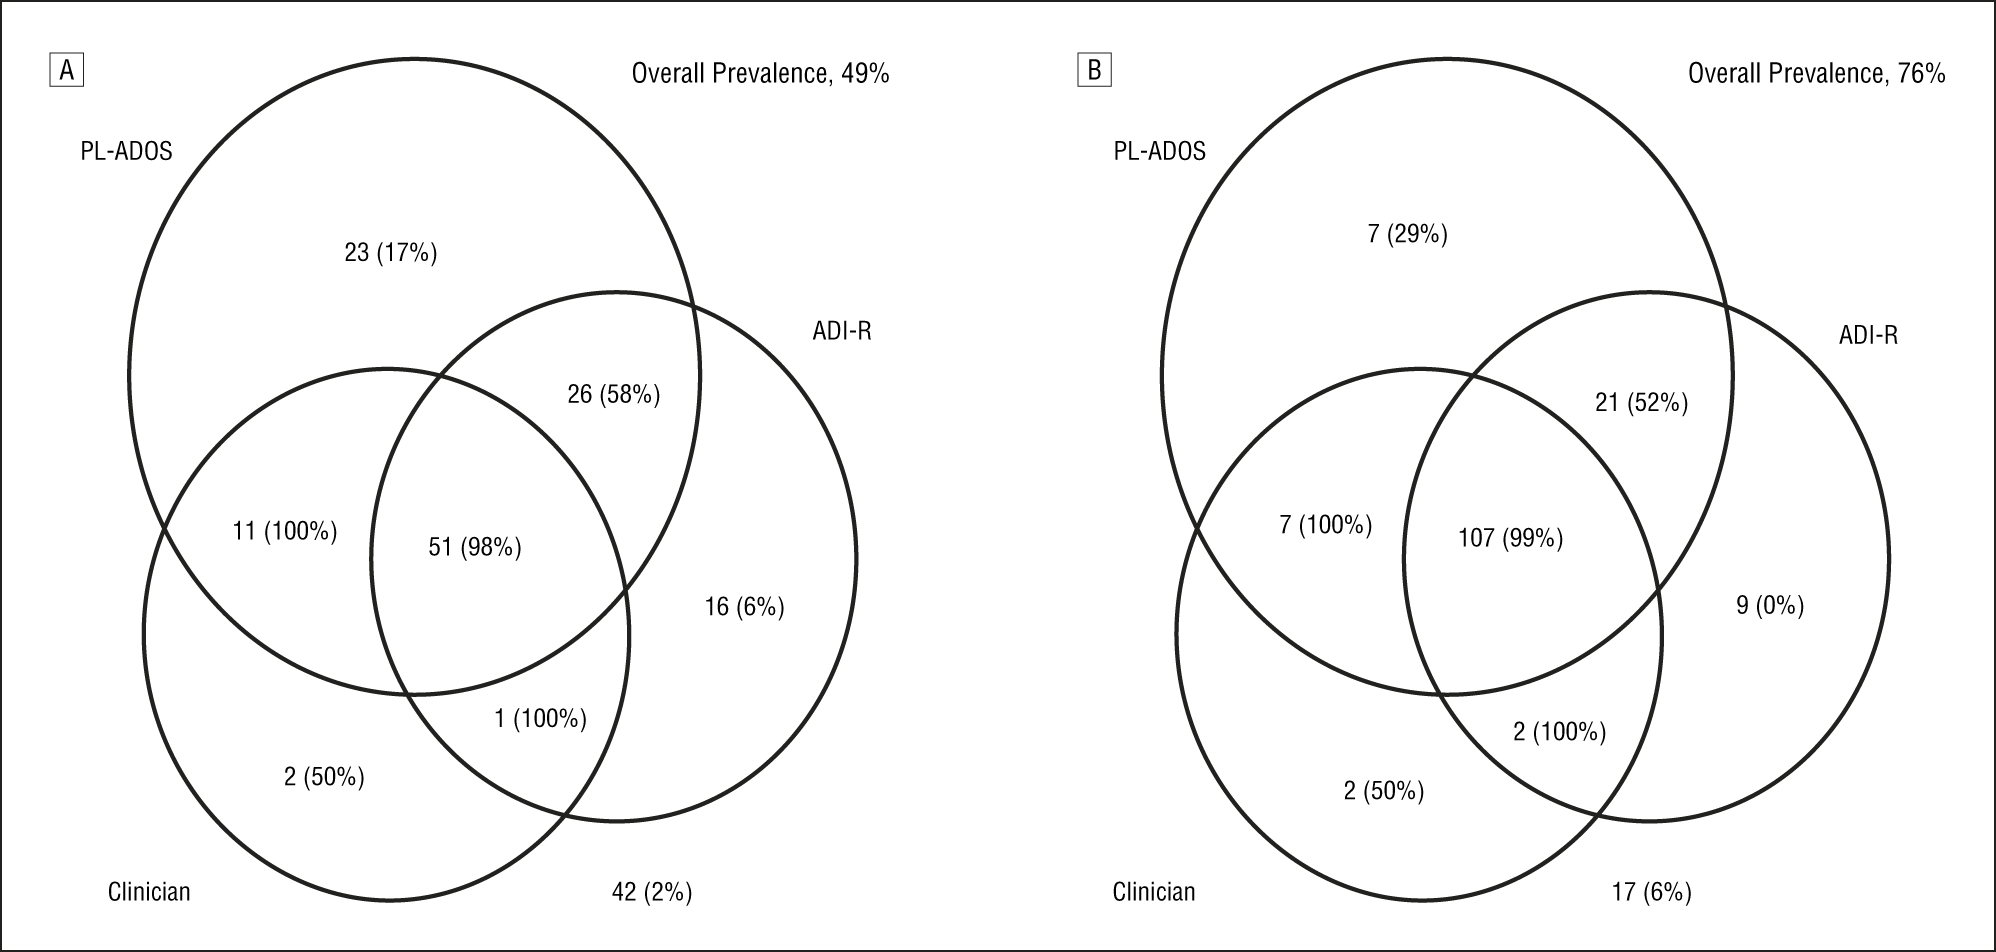 Frequency Of Diagnostic Combinations And Contemporaneous Best Estimate Diagnosis Prevalence In Parentheses At